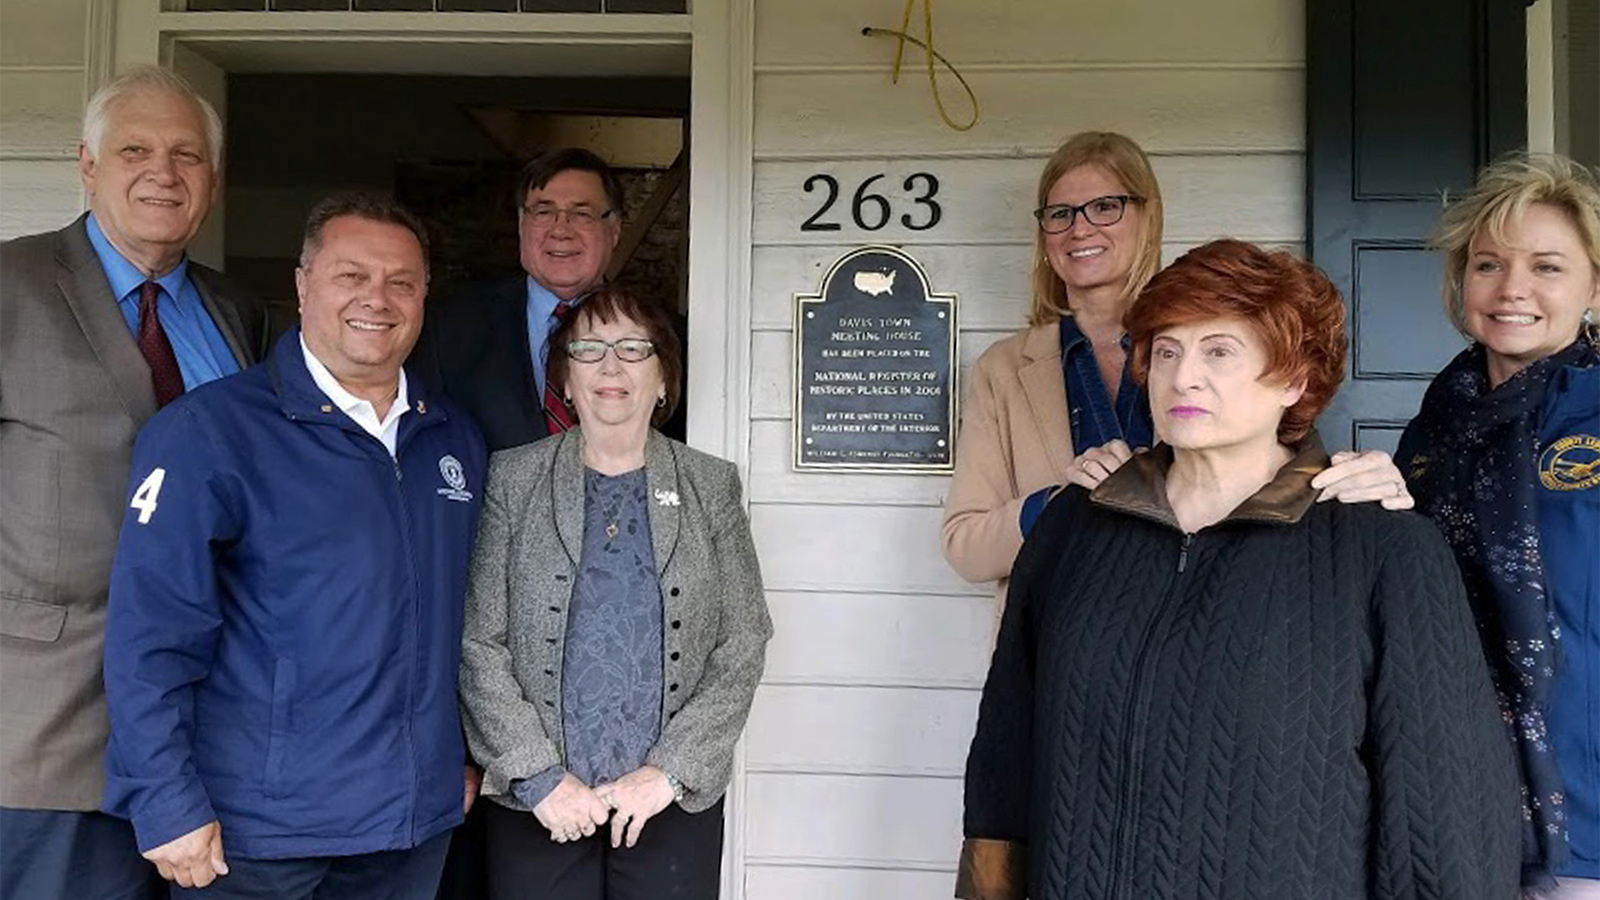 New plaque commemorates Davis Town Meeting House